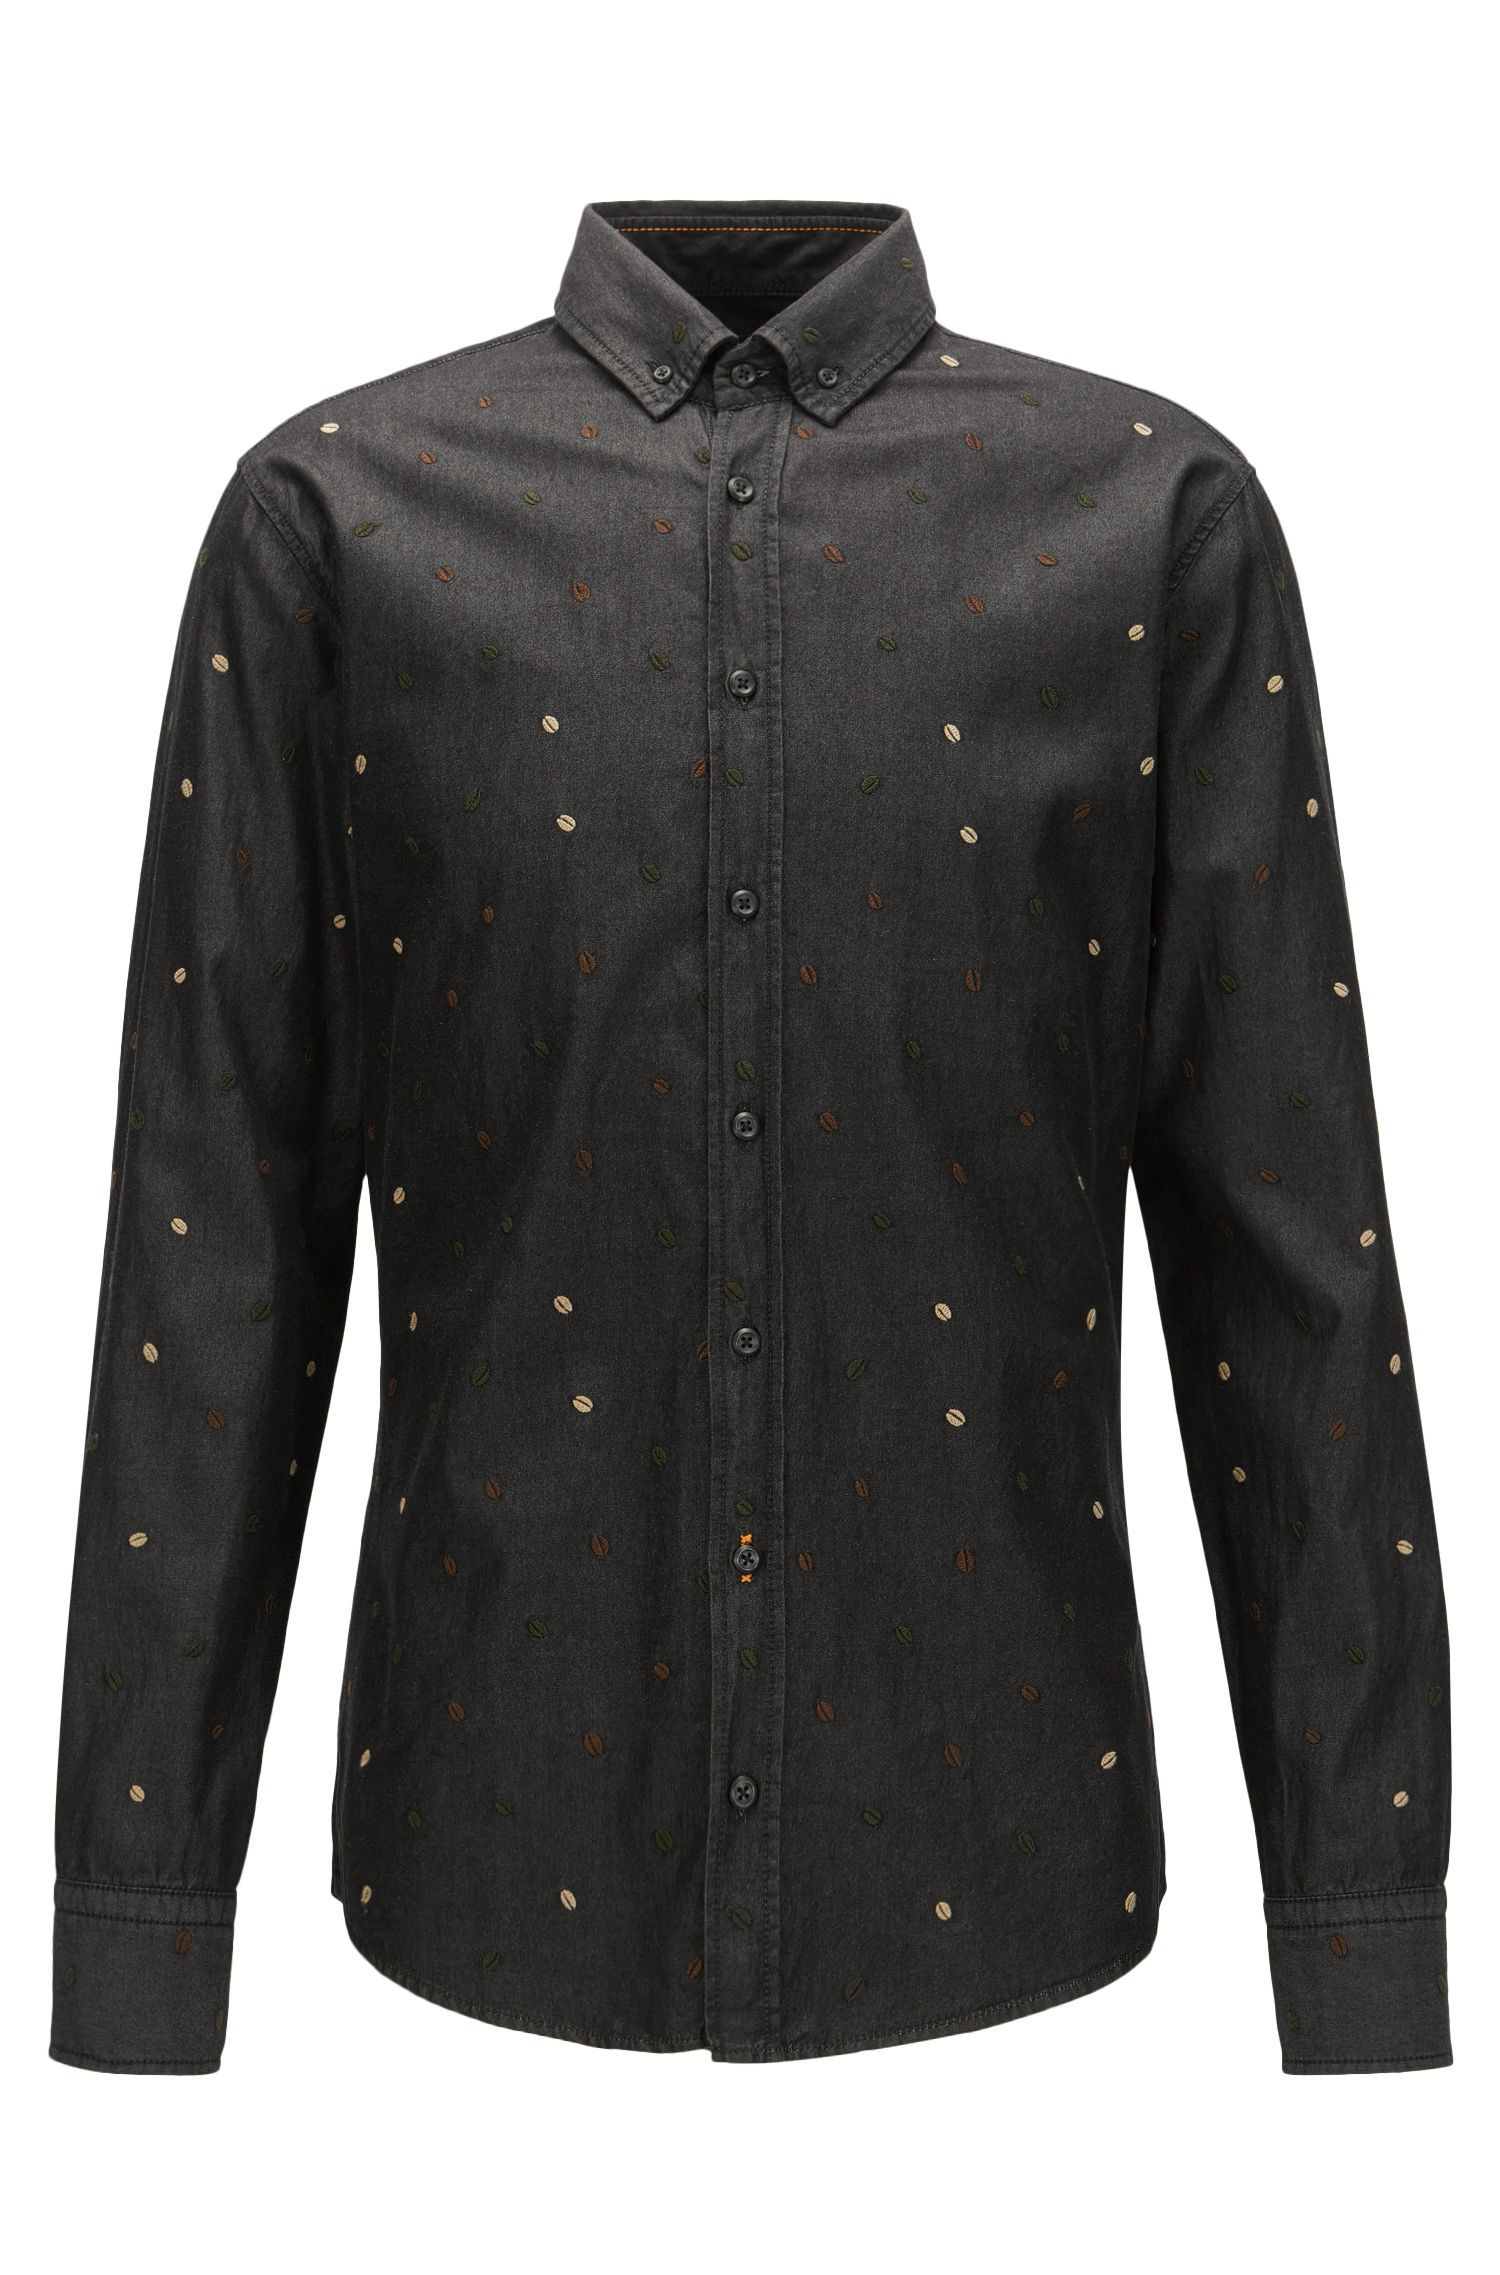 Slim-fit embroidered shirt in enzyme-washed black denim